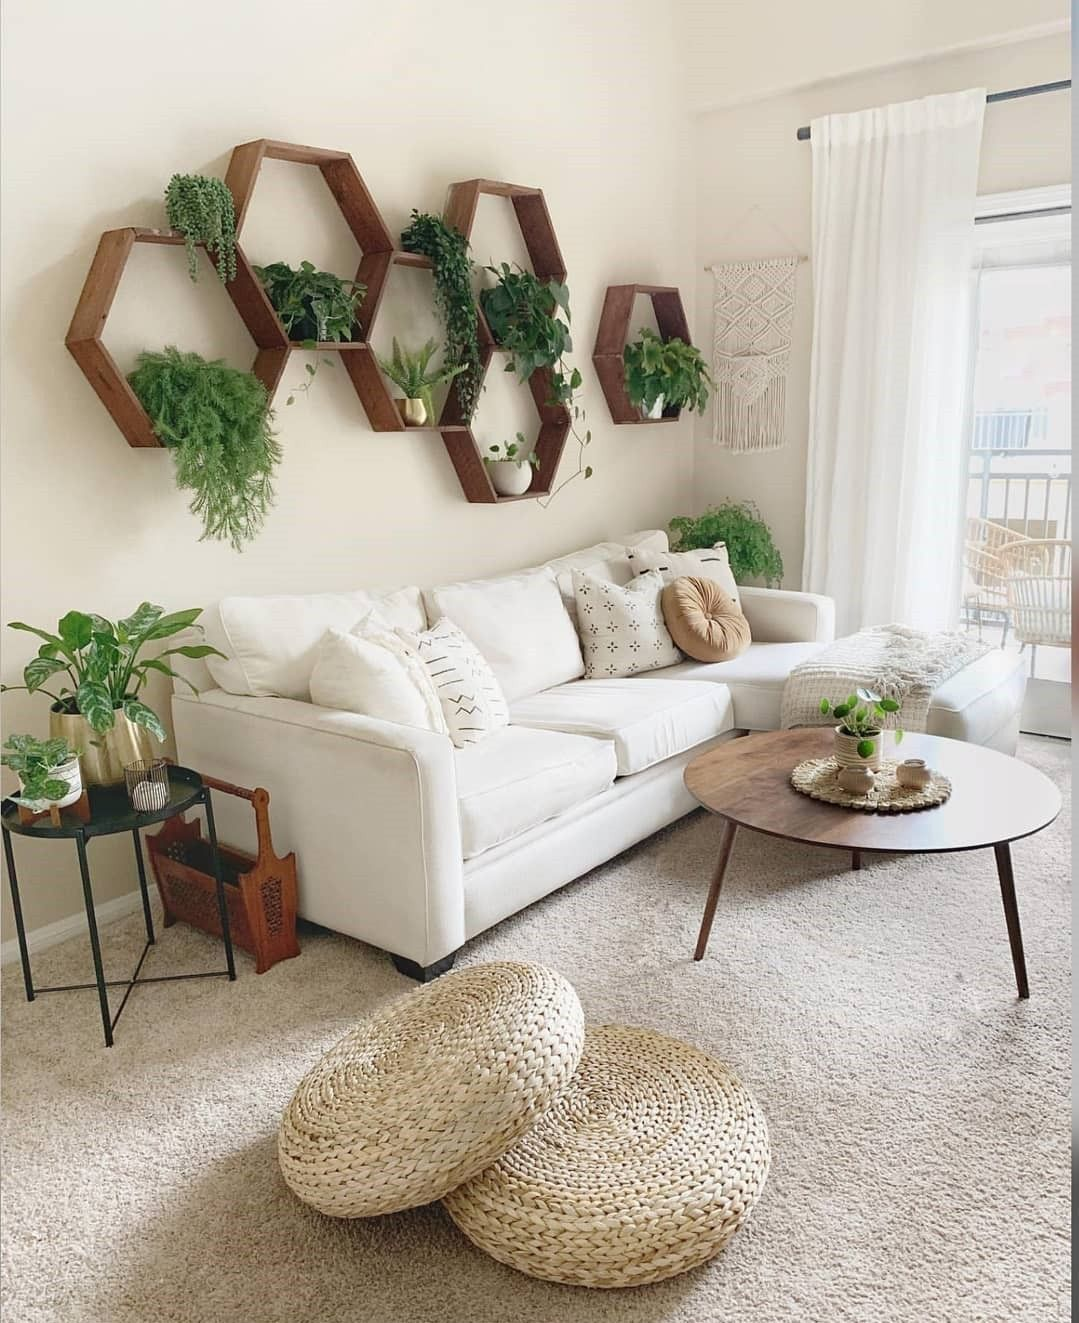 Boho Chic Home Decor Plans And Ideas With Images Wall Decor Living Room Living Room Color Room Wall Decor